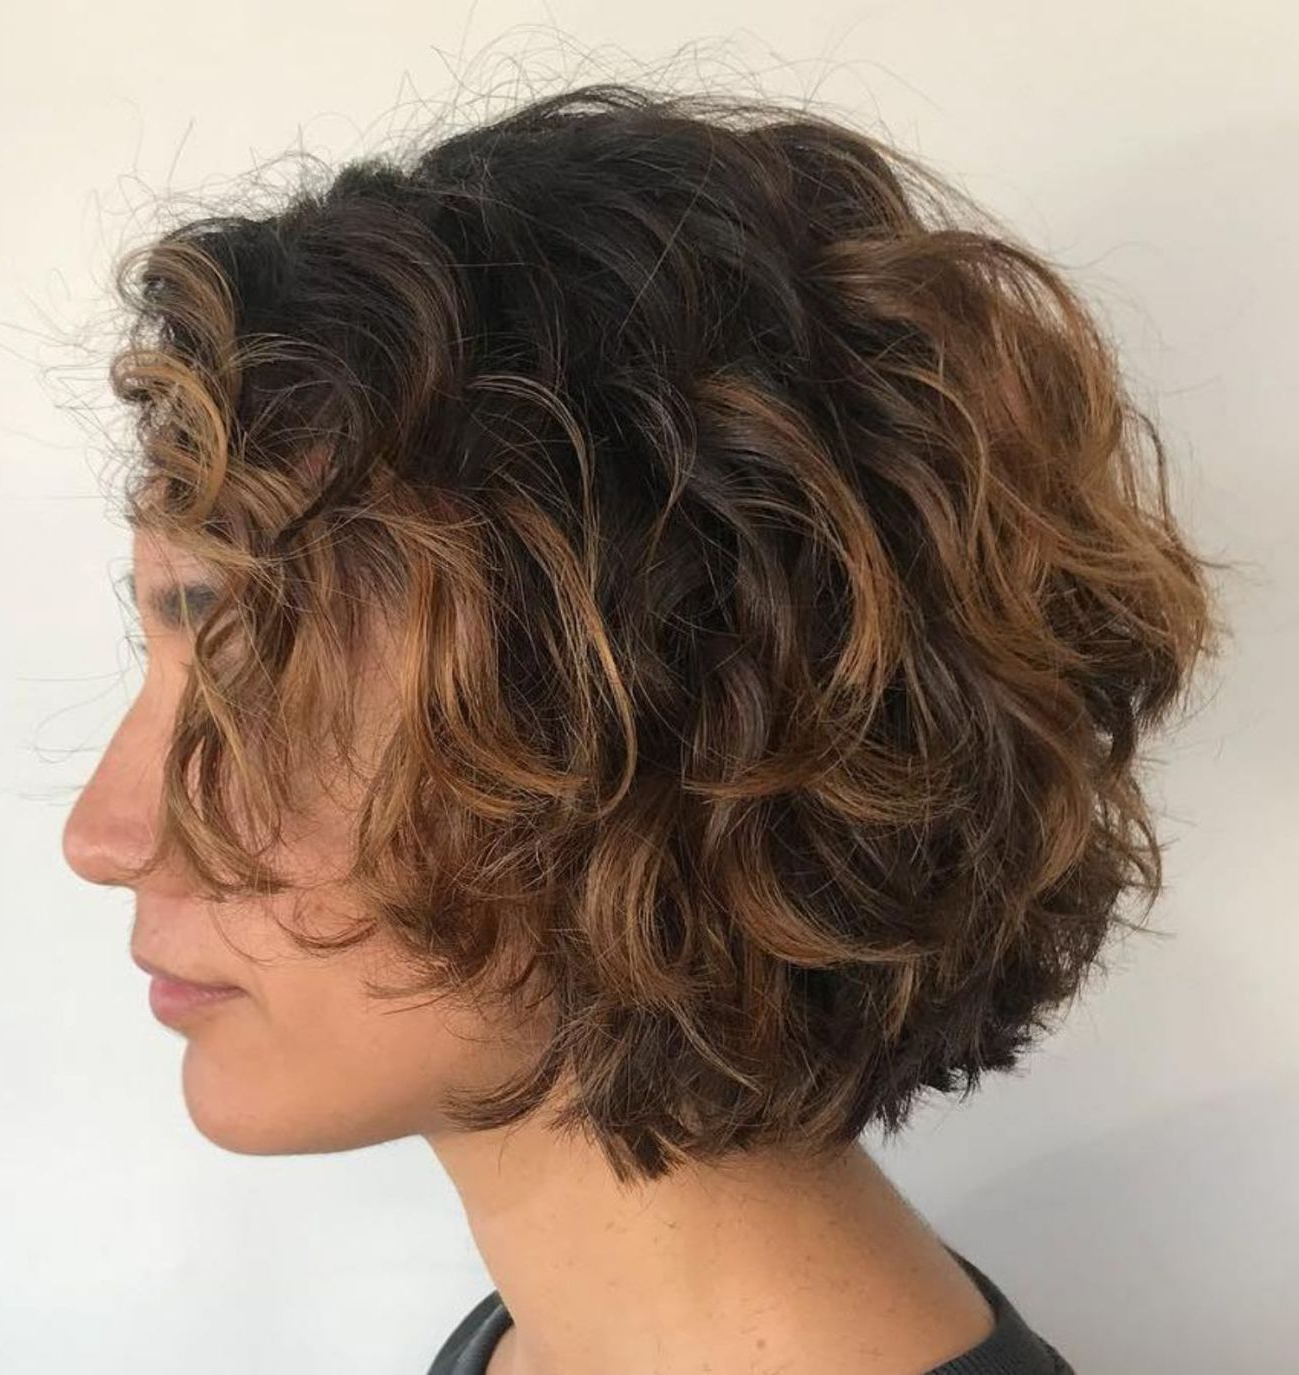 55 Different Versions Of Curly Bob Hairstyle In 2018 | Hair With Regard To Stacked Curly Bob Hairstyles (View 19 of 25)